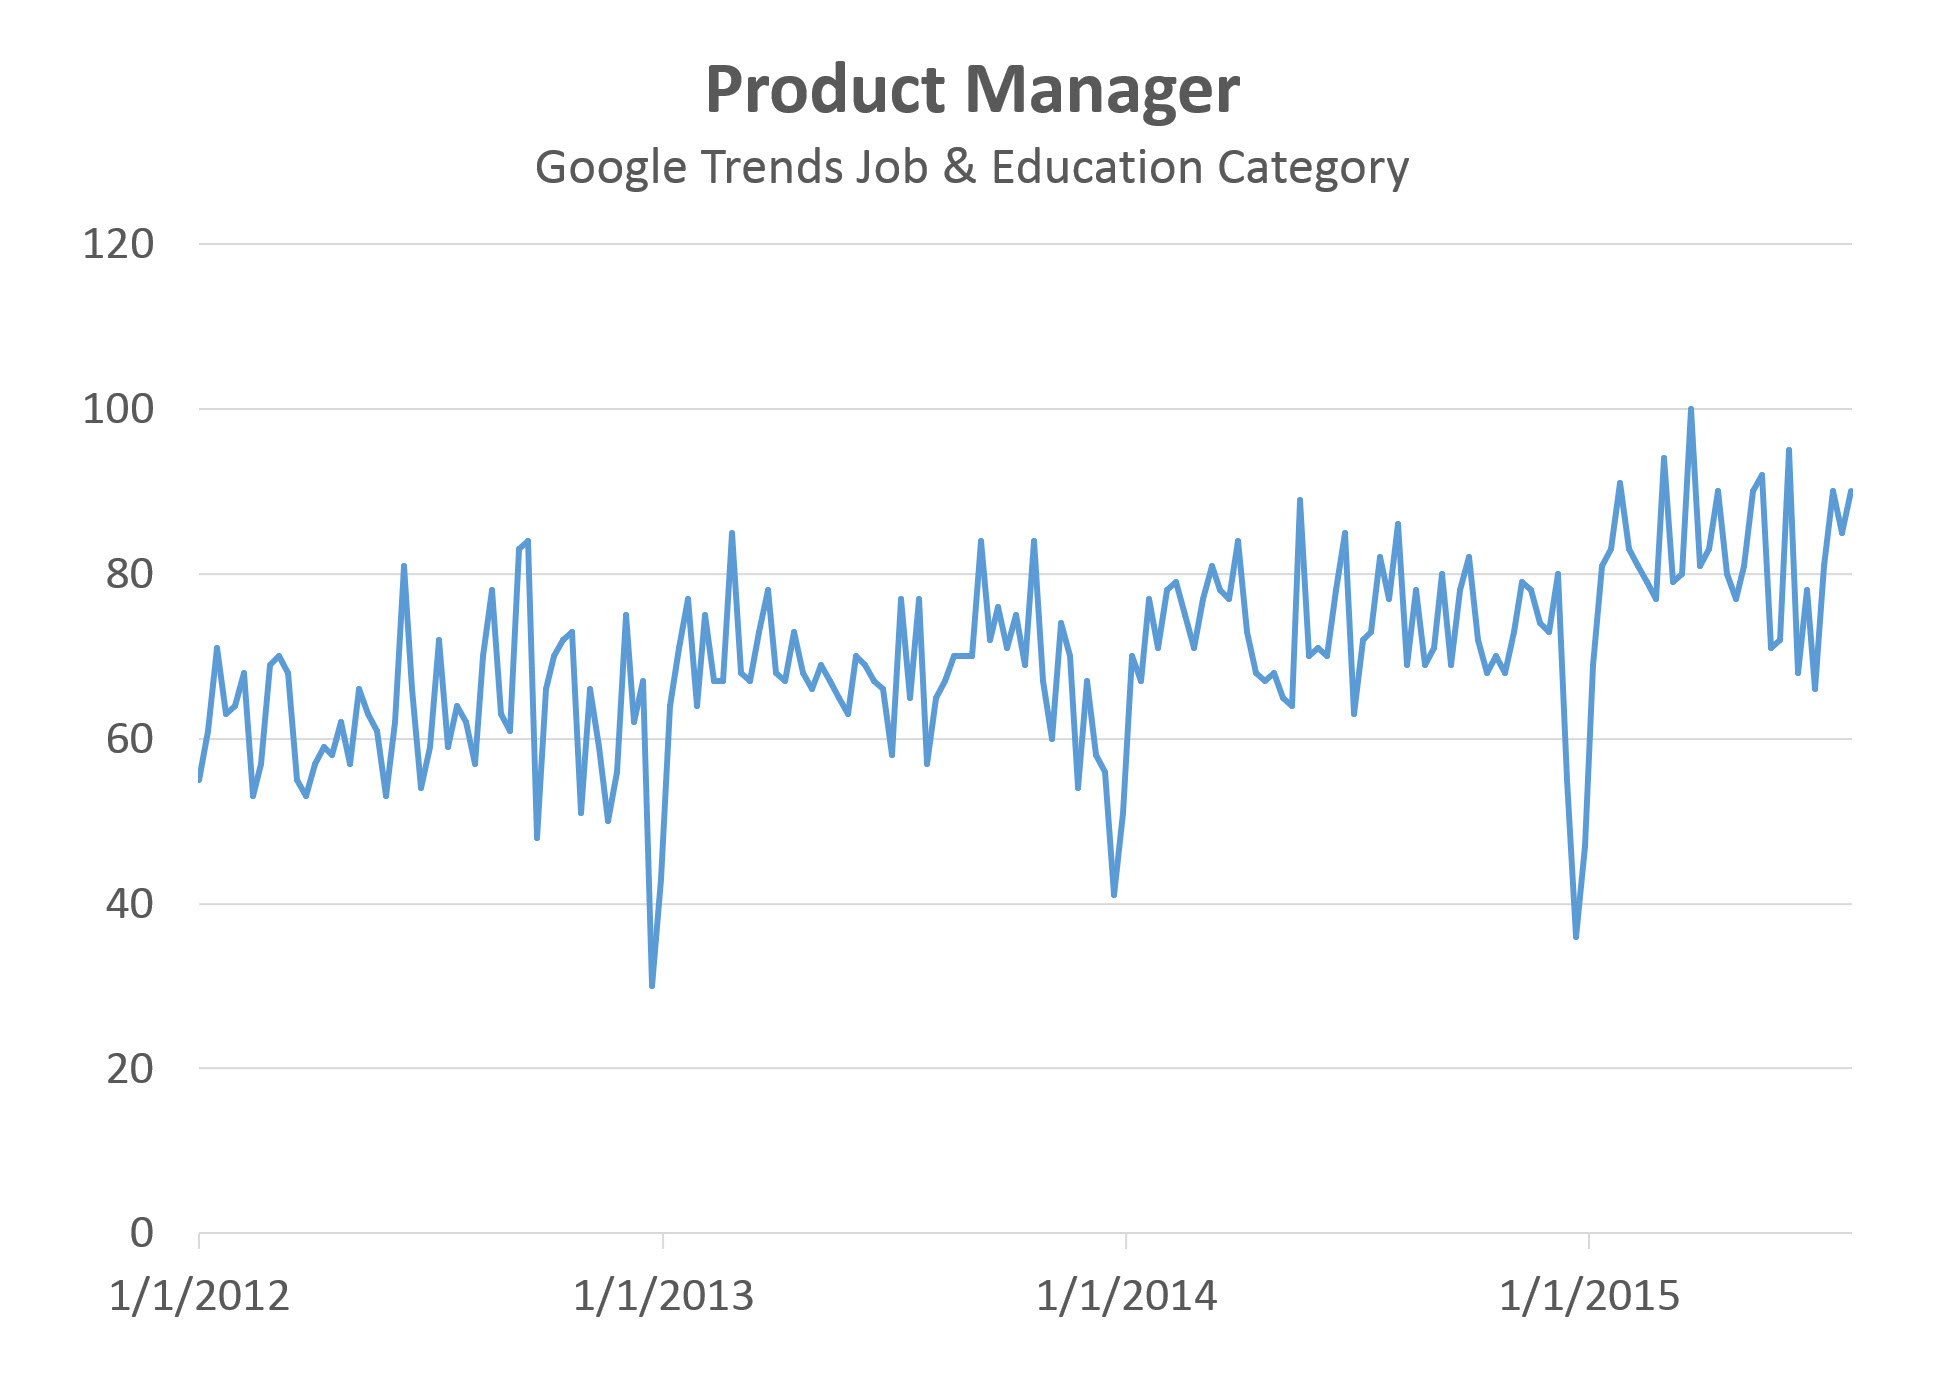 Product Manager Job - Google Trends